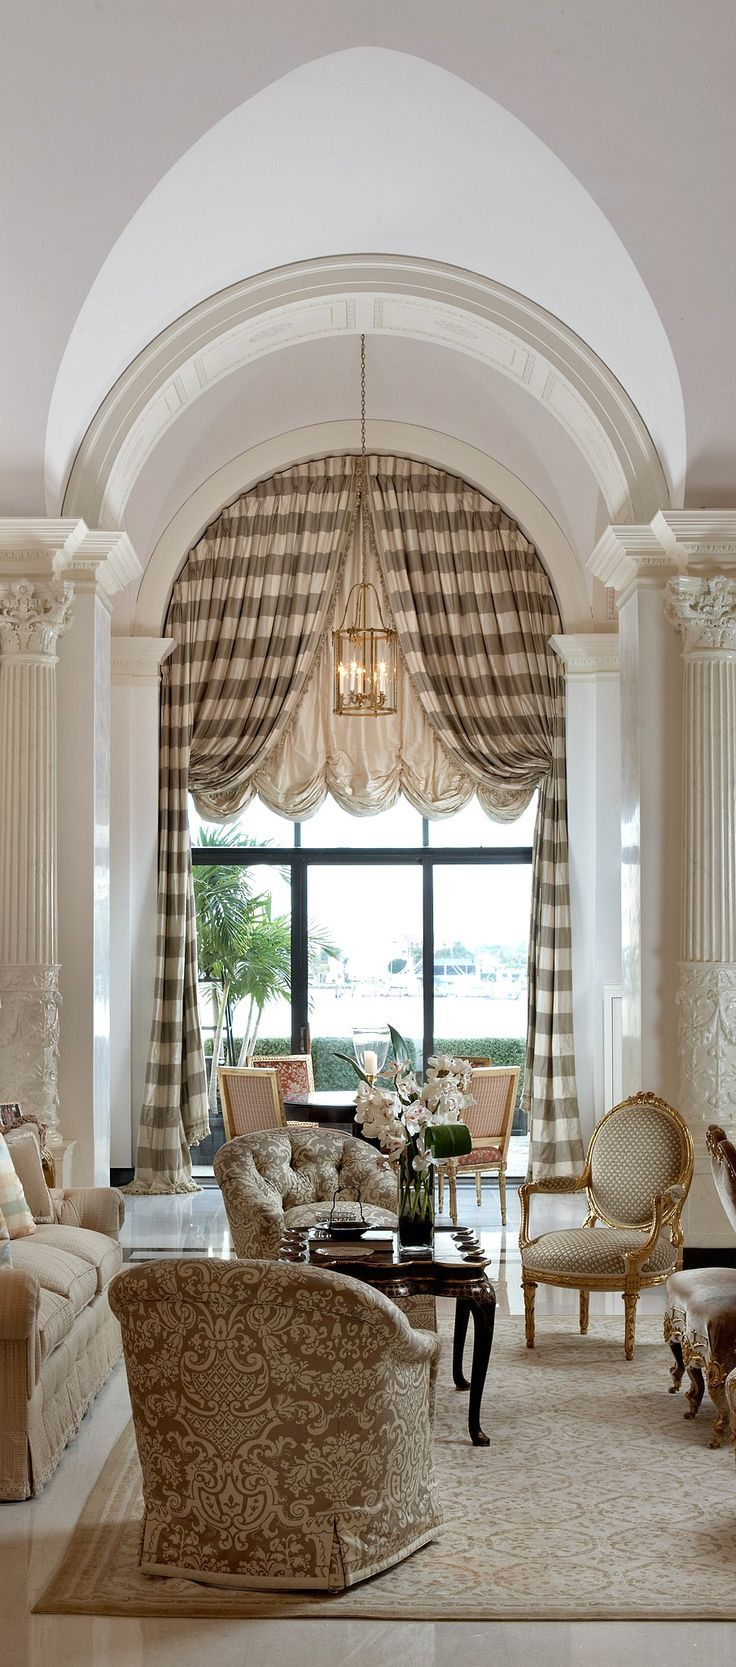 Window treatment ideas for 3 windows in a row   best treatments images on pinterest  border tiles shades and